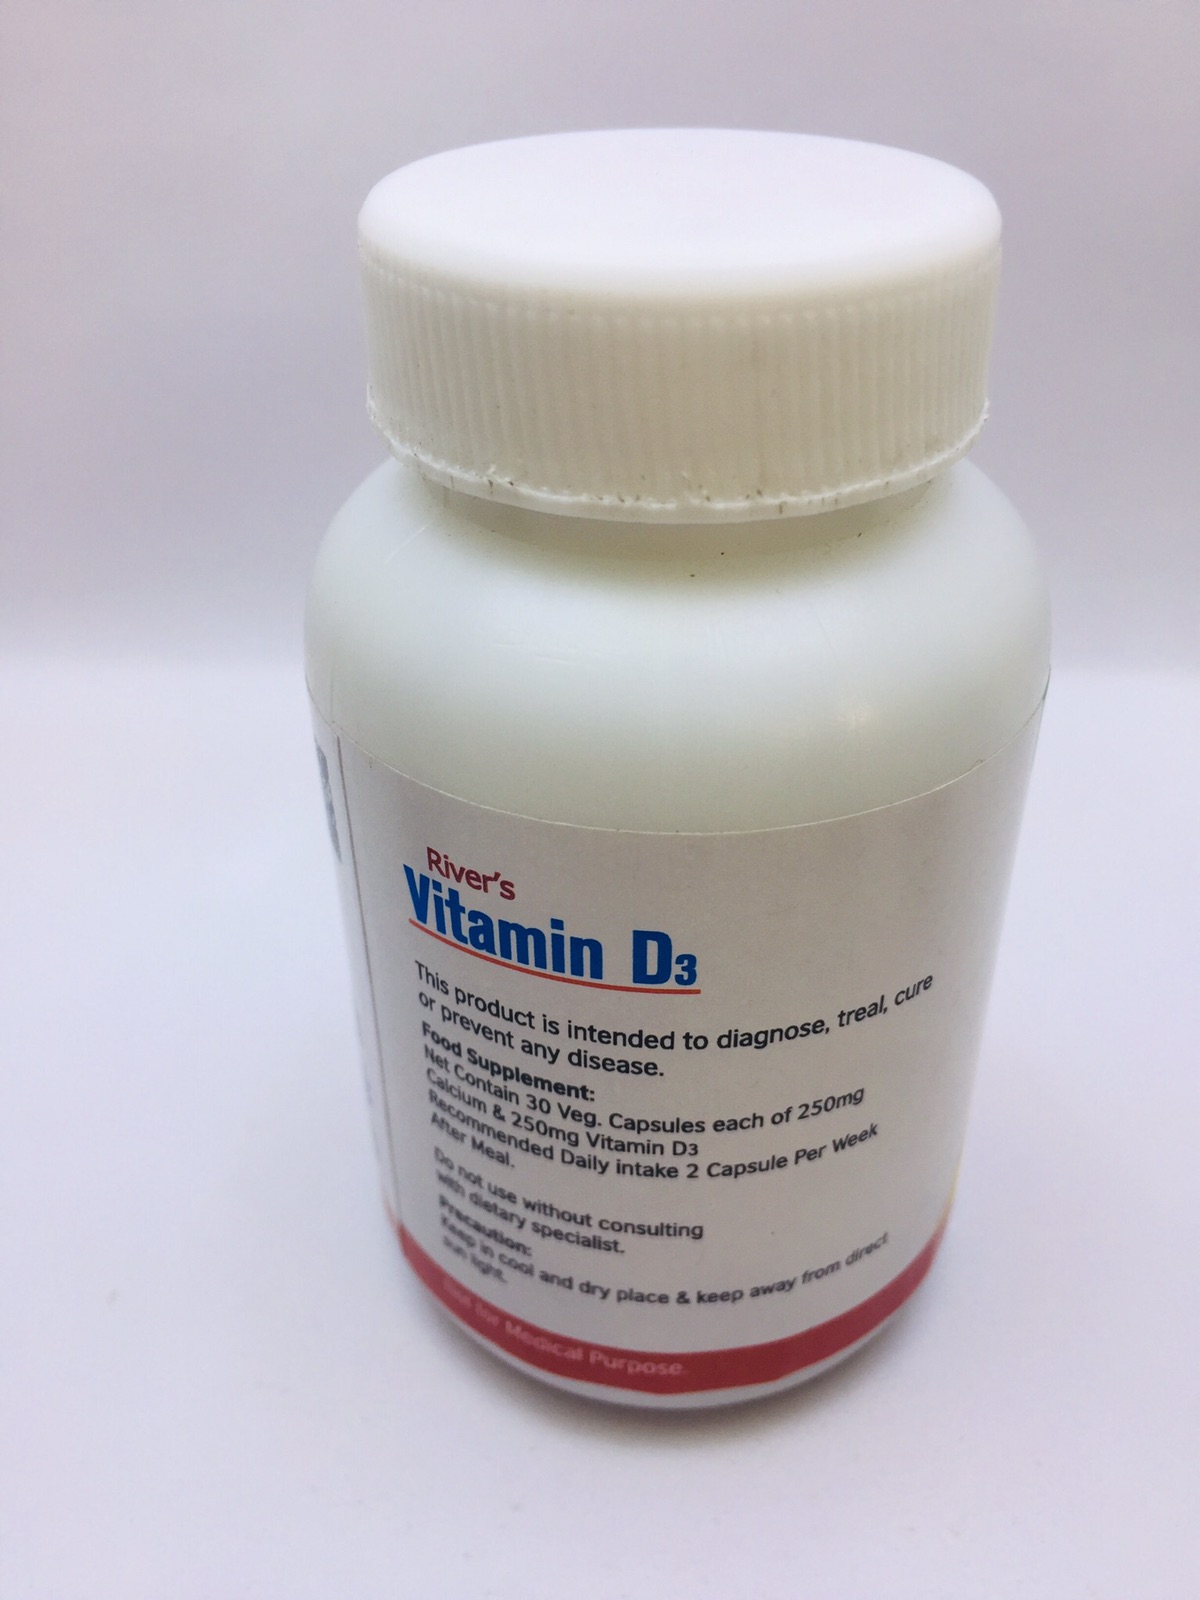 River's Vitamin D3-25Oo Iu With Calcium 500Mg, Calcium Supplement And Vitamin D3 Supplement, Bones And Skeletal Tissues Maintenance Essence,Bones Support, Height Growth Food Supplement